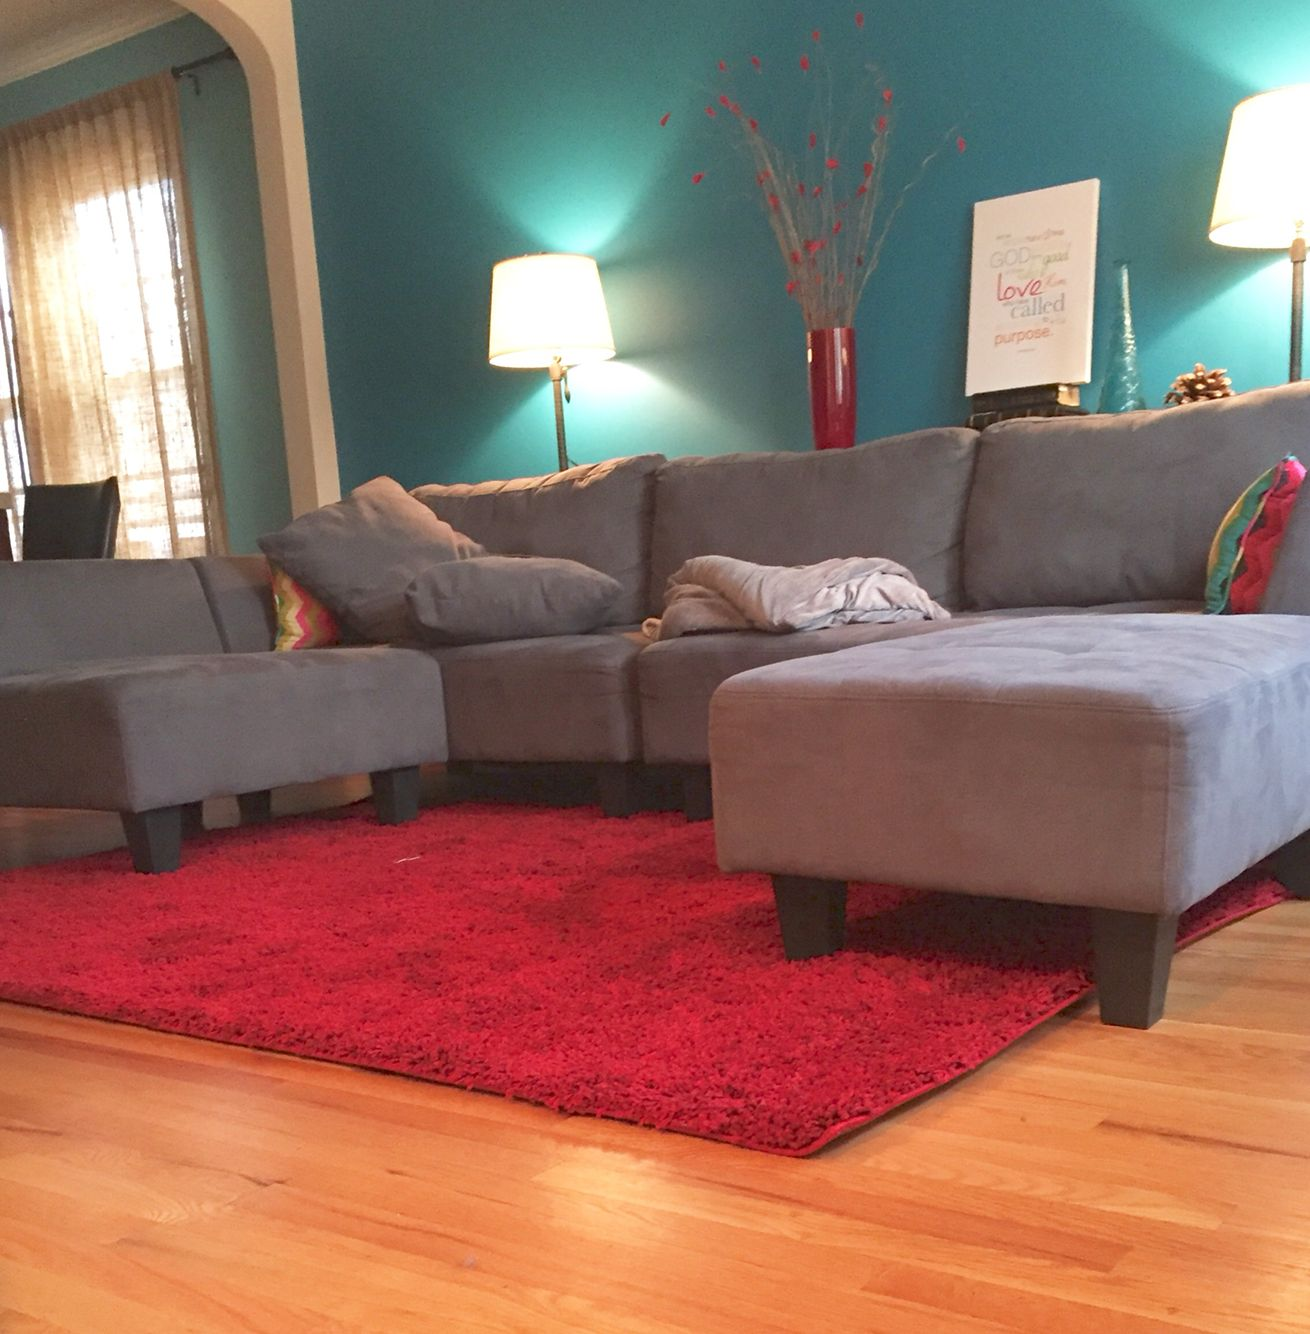 red rugs for living room living room idea: teal blue wall, grey couch, ruby red rug JYNJNBW